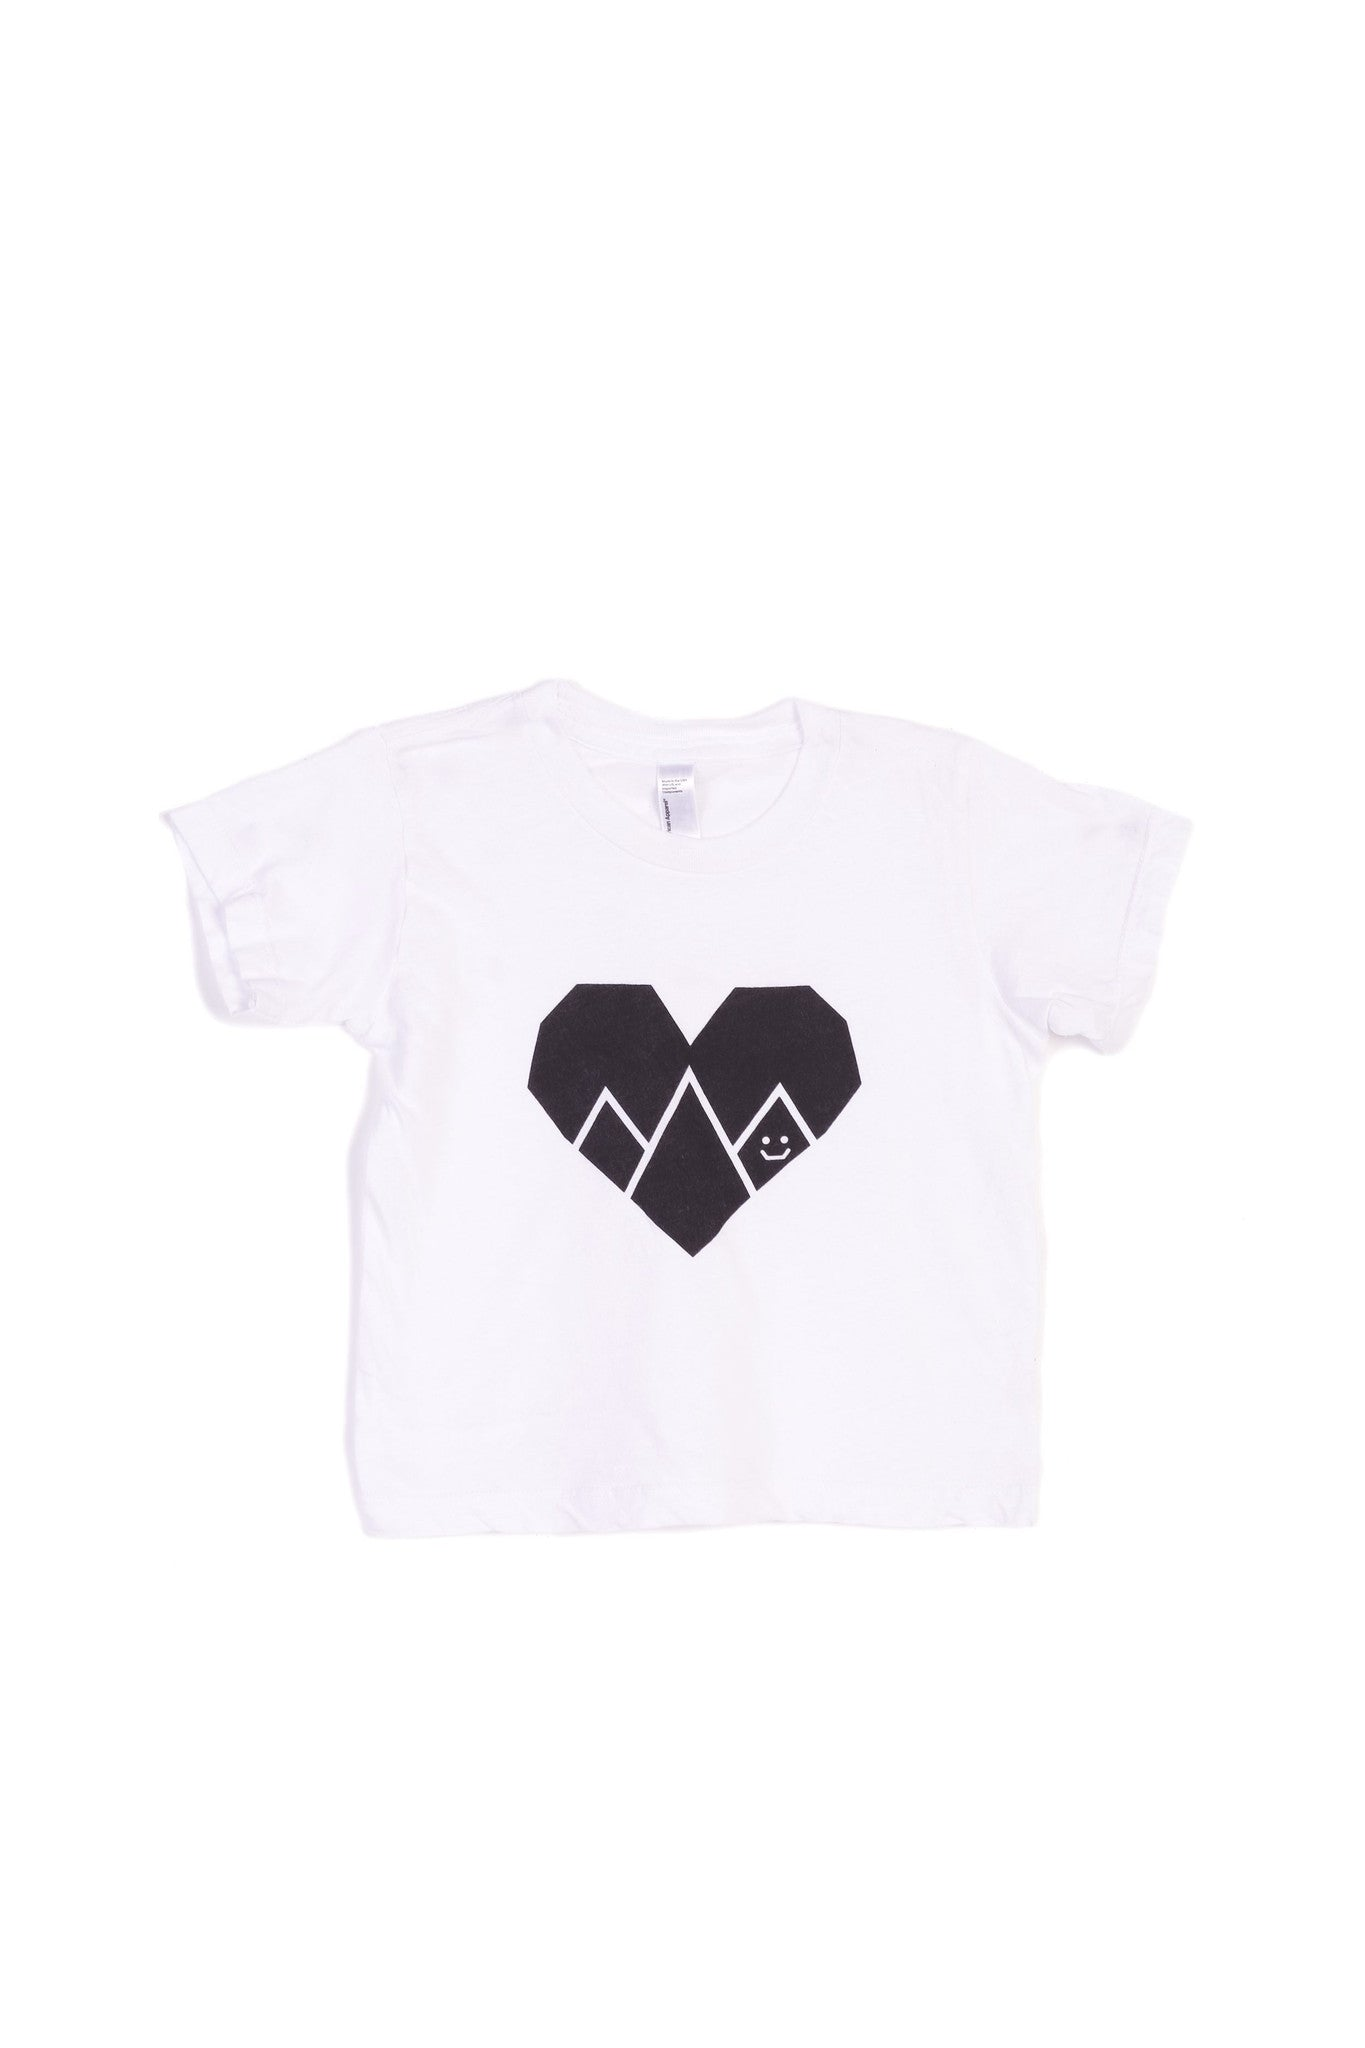 Heart and Mountains Tee